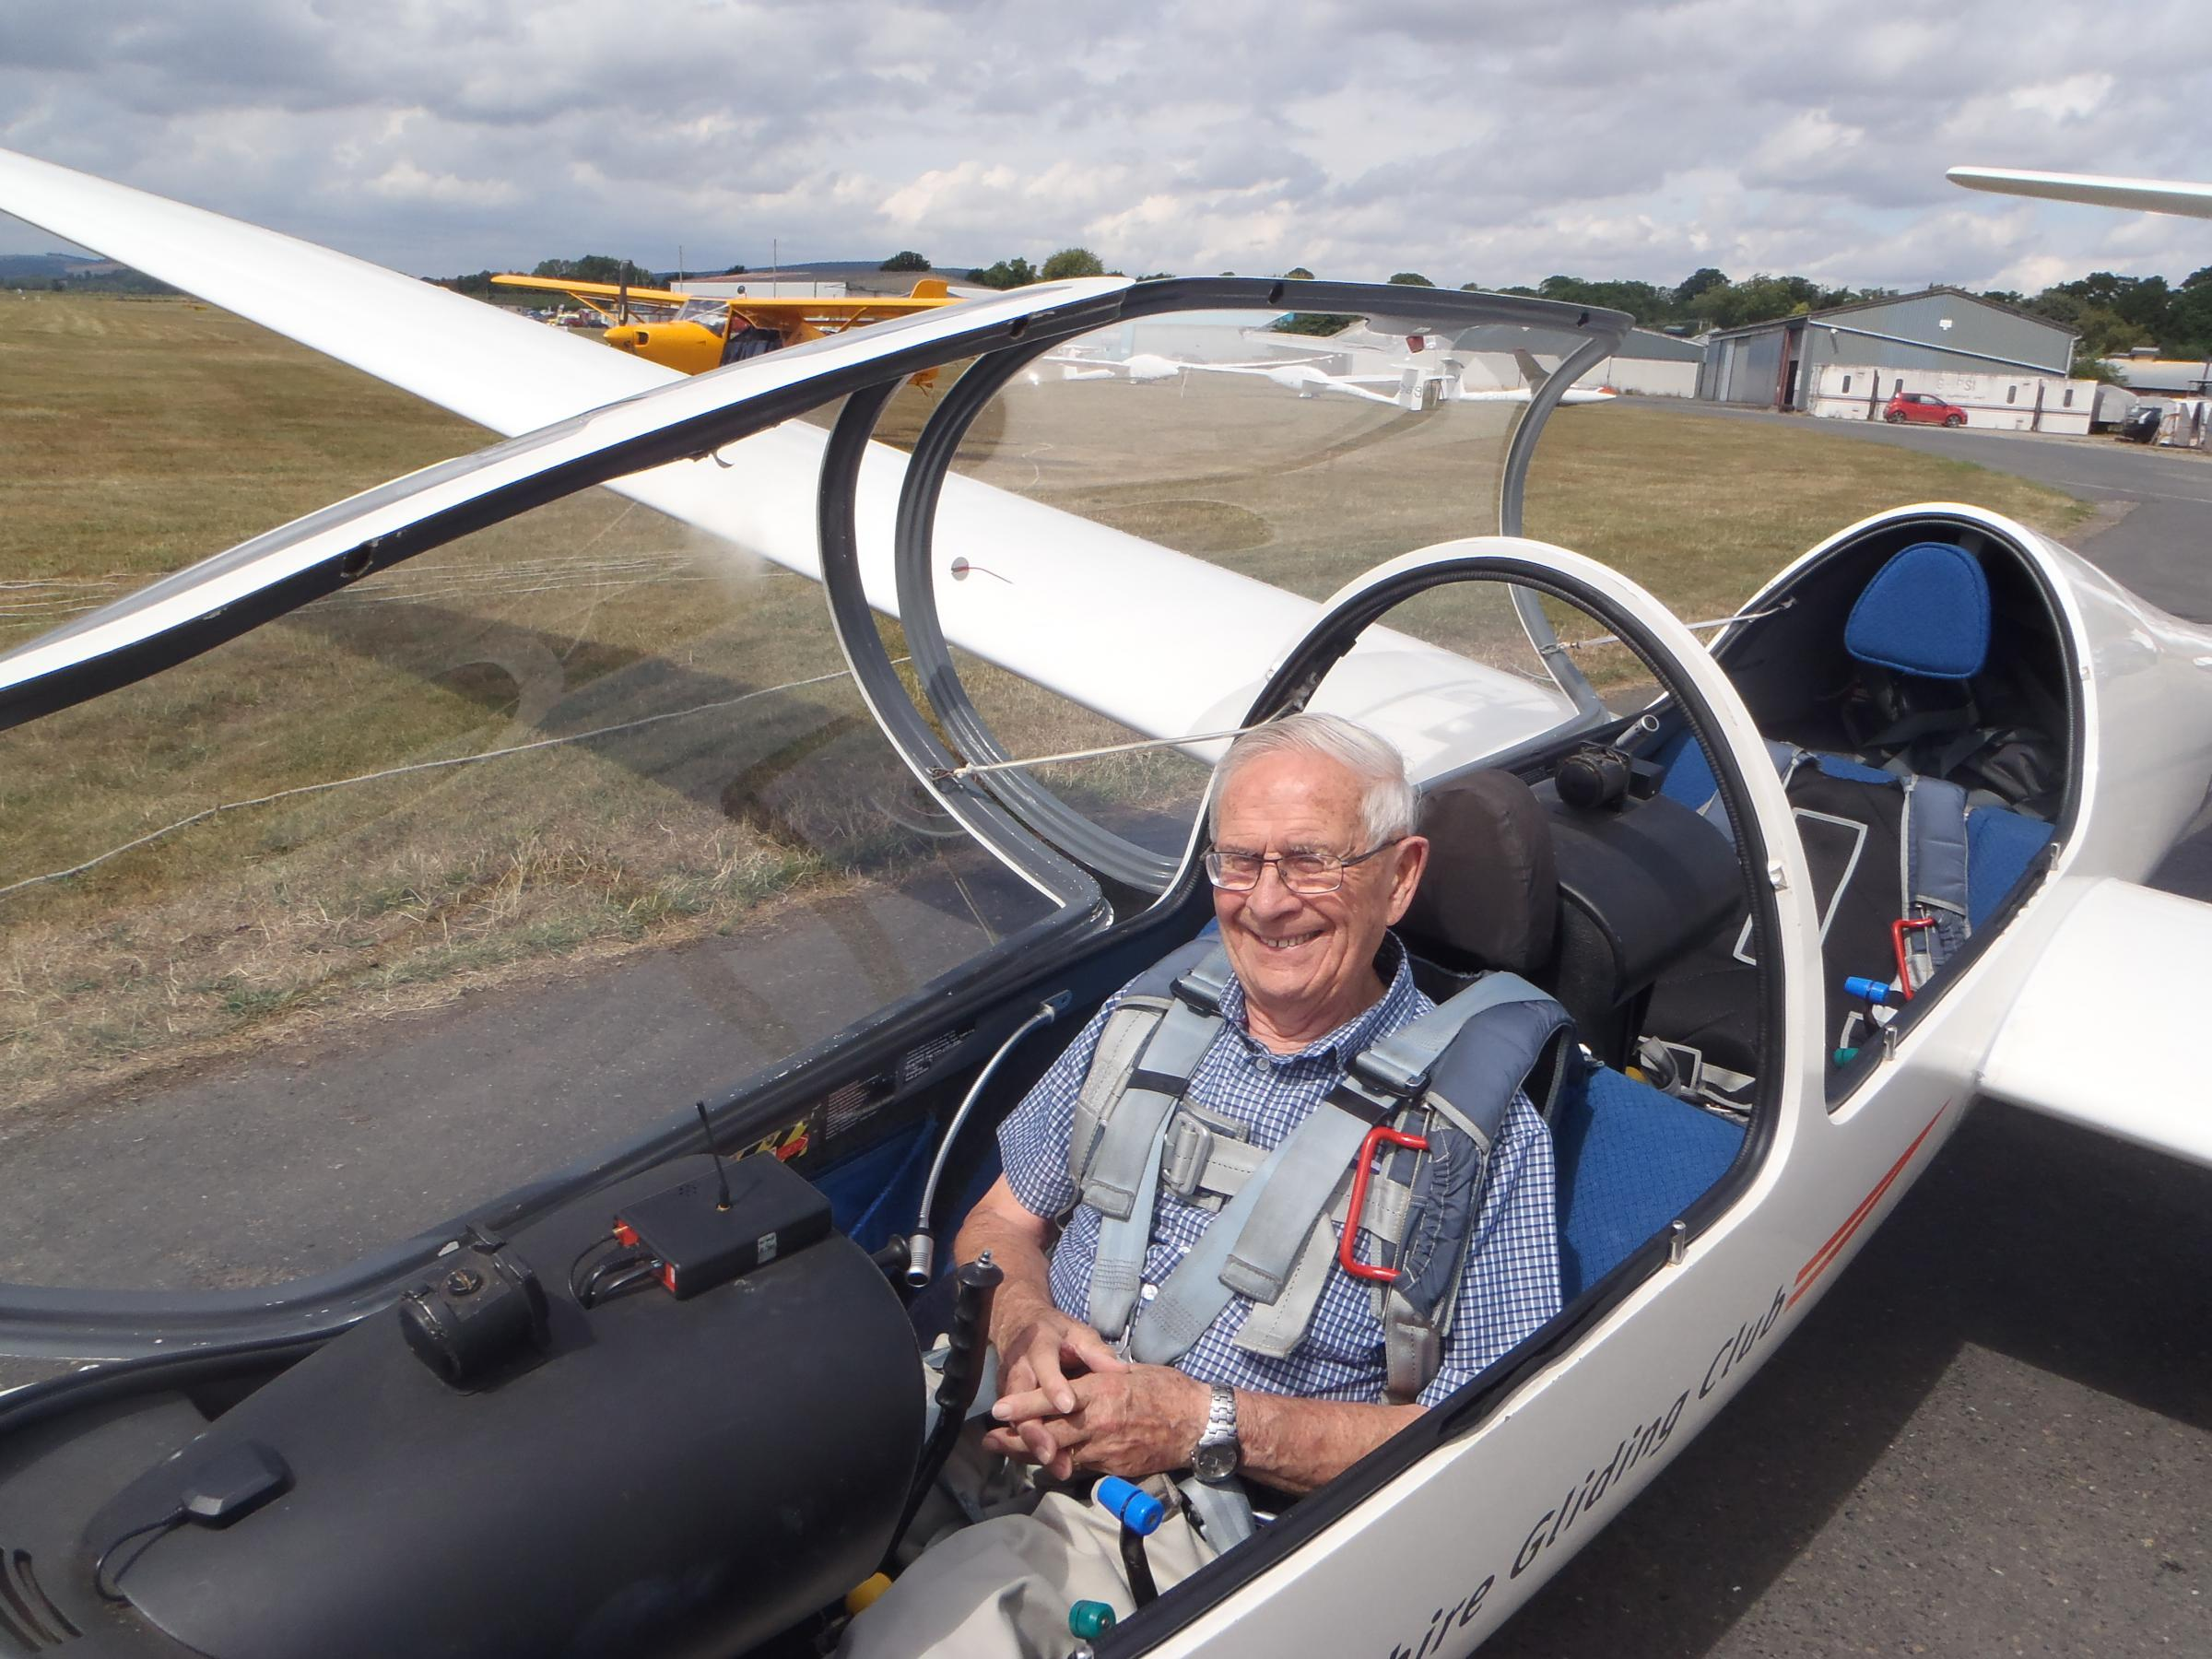 Wally Bowles in the training glider at Shobdon Airfield. Photo by Dewi Edwards